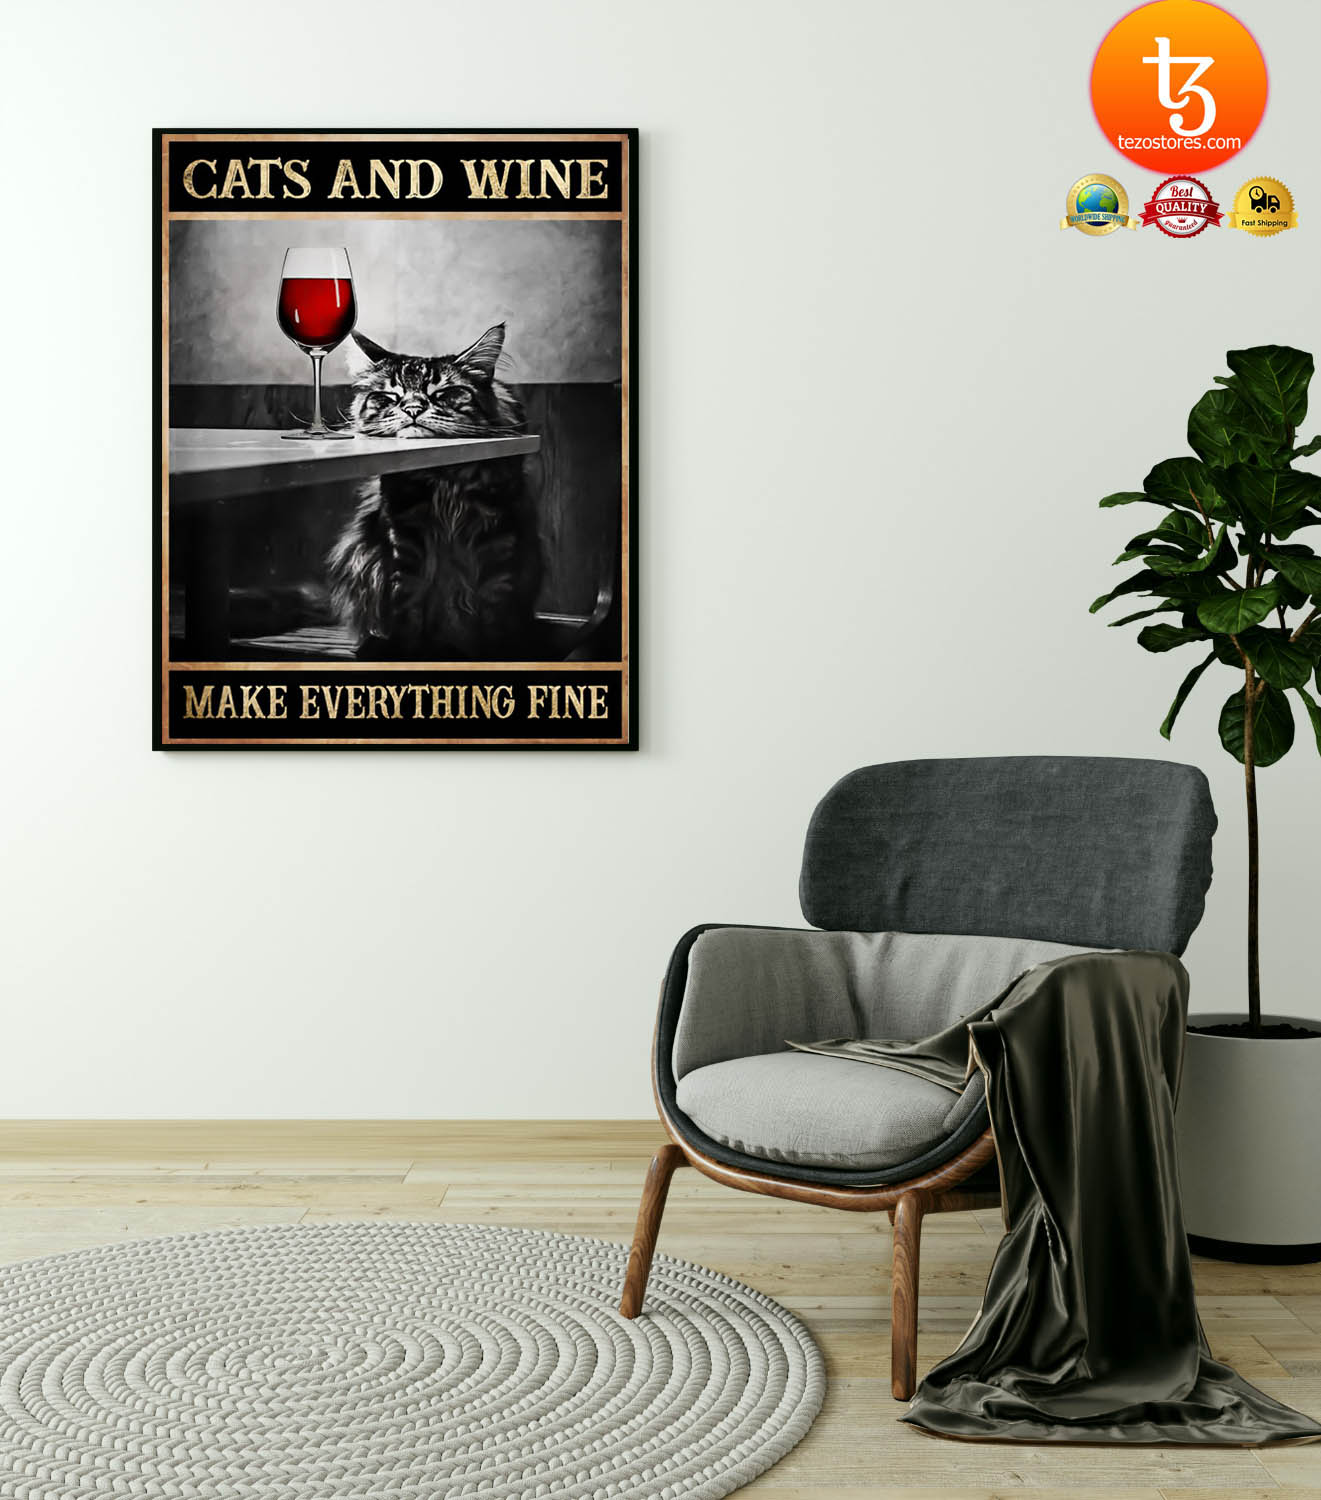 Cats and wine make everything fine poster 19